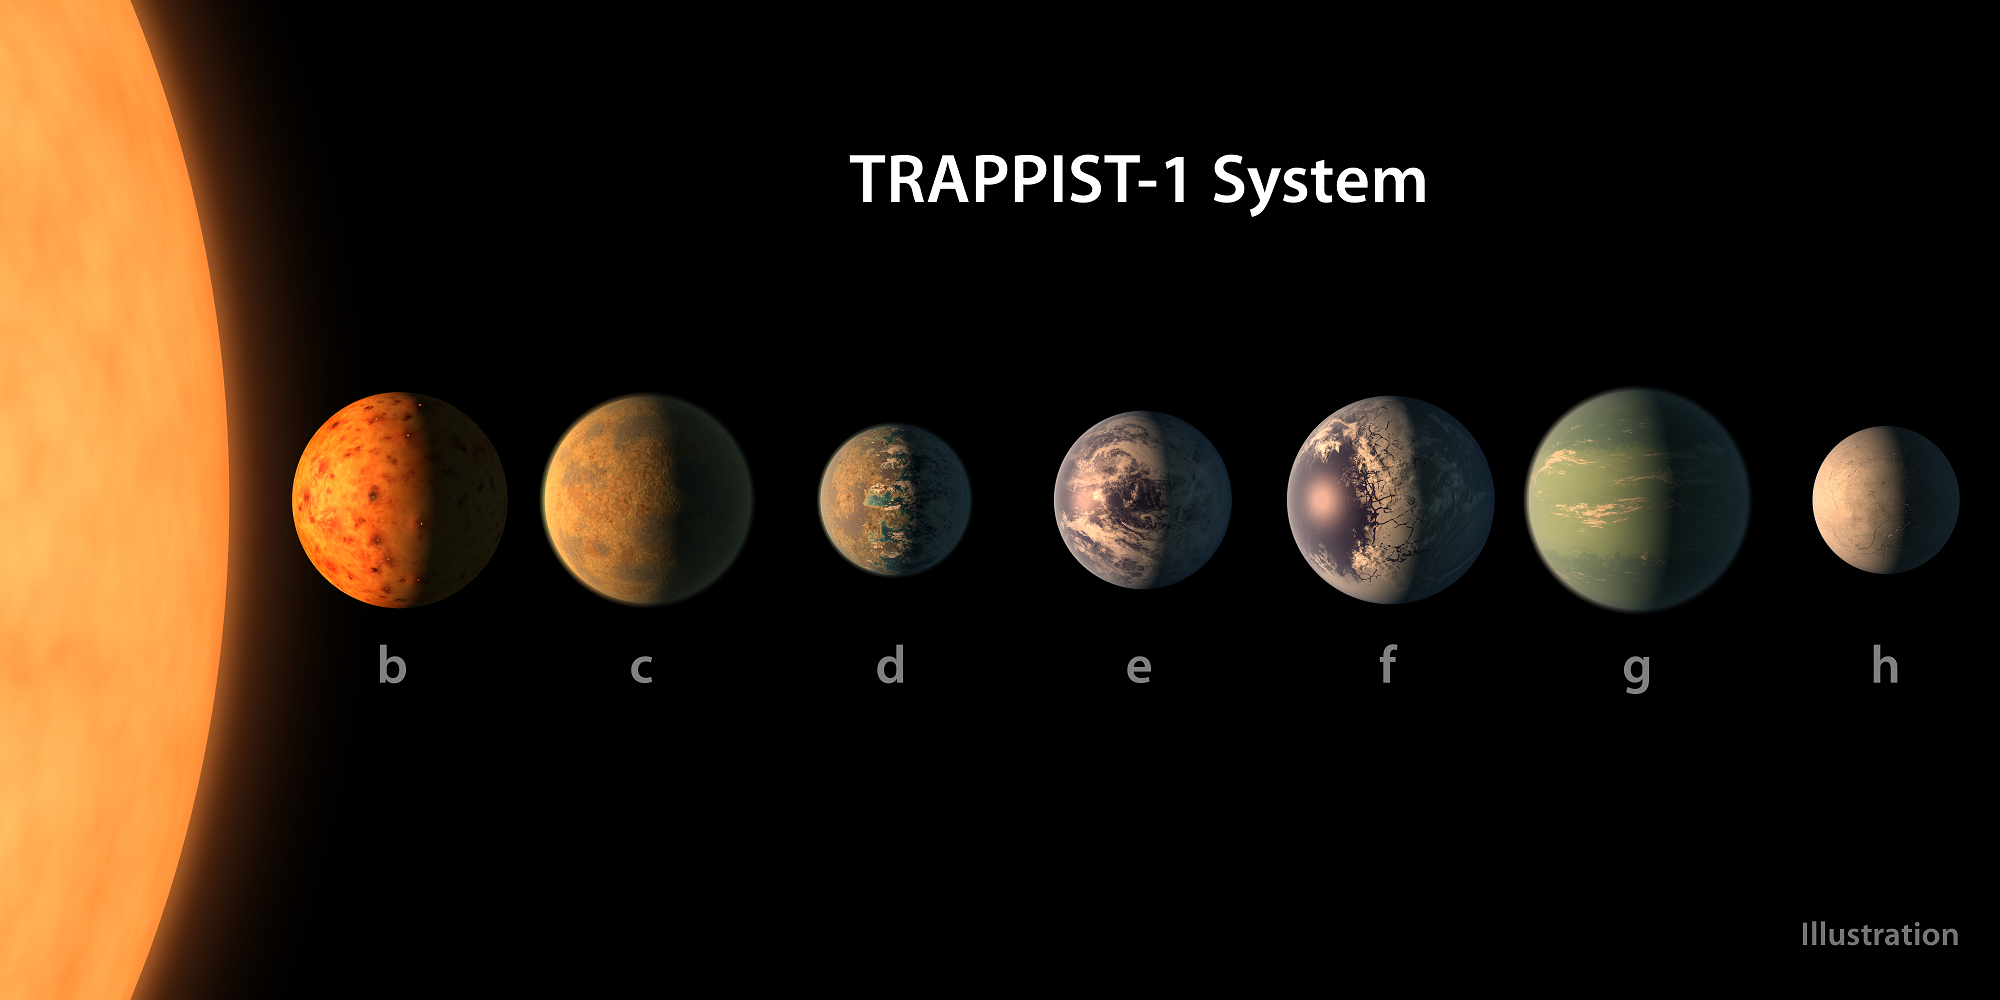 This artist's concept shows what each of the TRAPPIST-1 planets may look like, based on available data about their sizes, masses and orbital distances. - Image Credits: NASA/JPL-Caltech